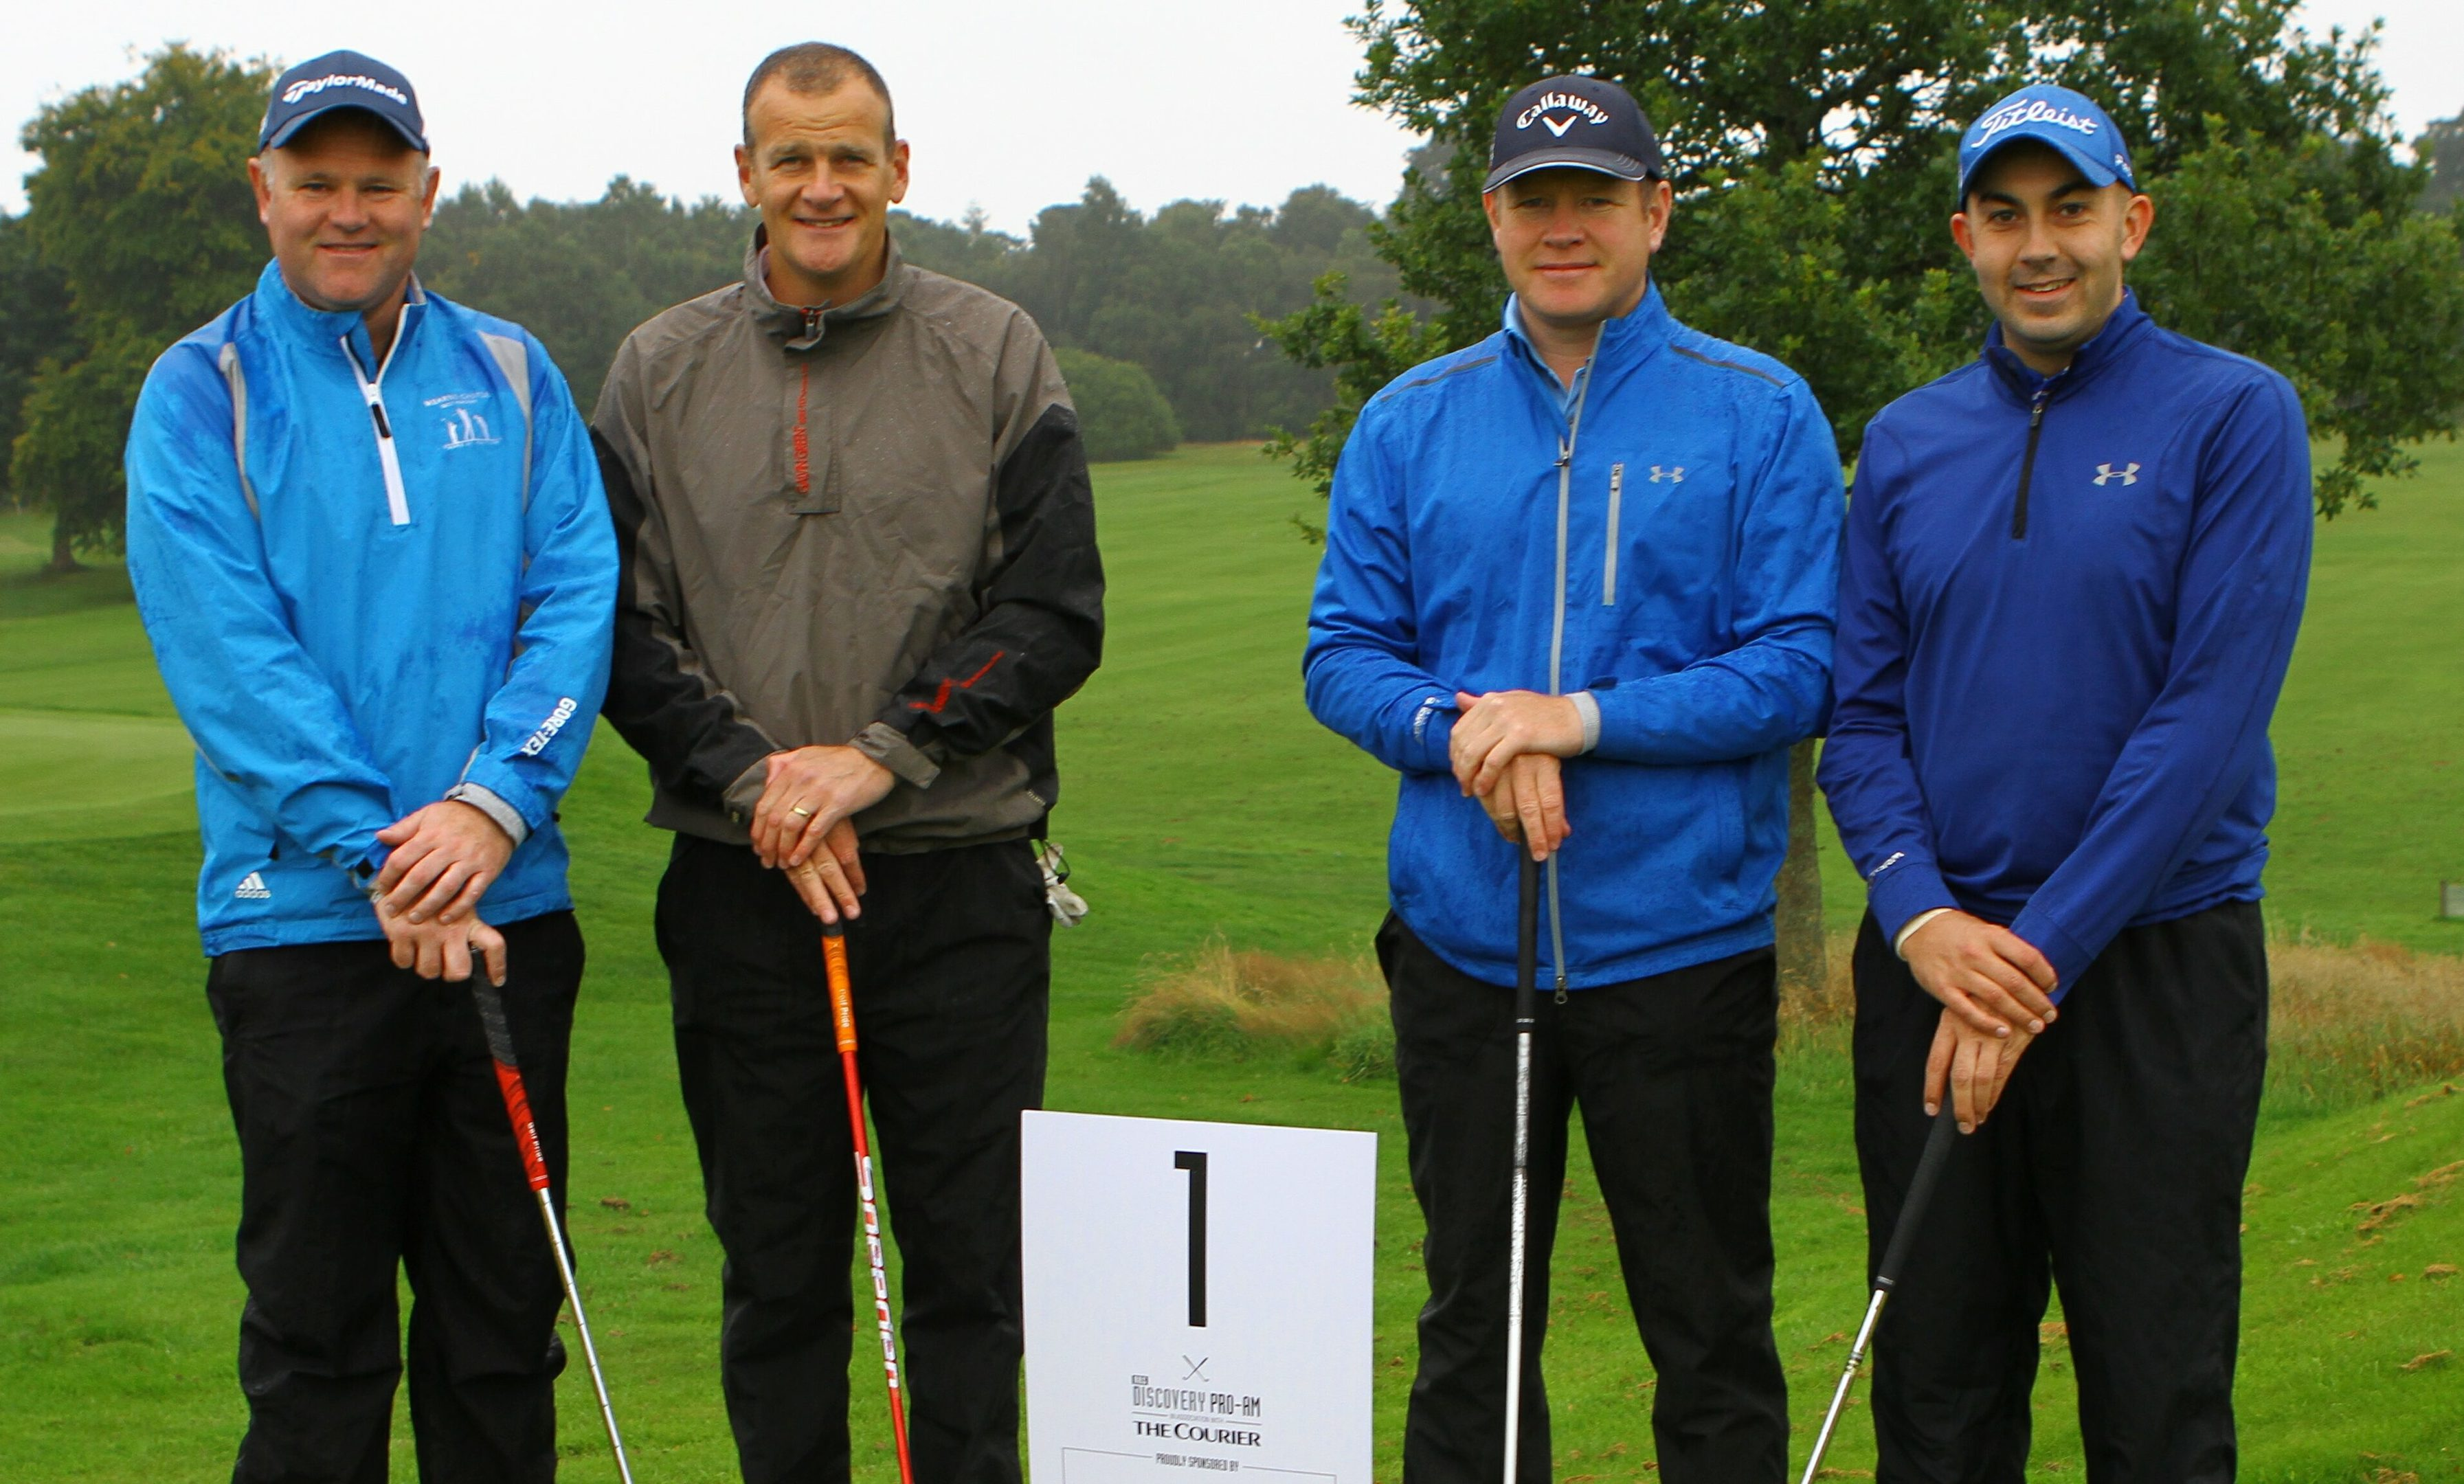 Alastair Forsyth, Ross Graham, Stuart Graham and Nick Barr before teeing off at the RRS Discovery Pro-am Golf Tournament at Downfield Golf Club.